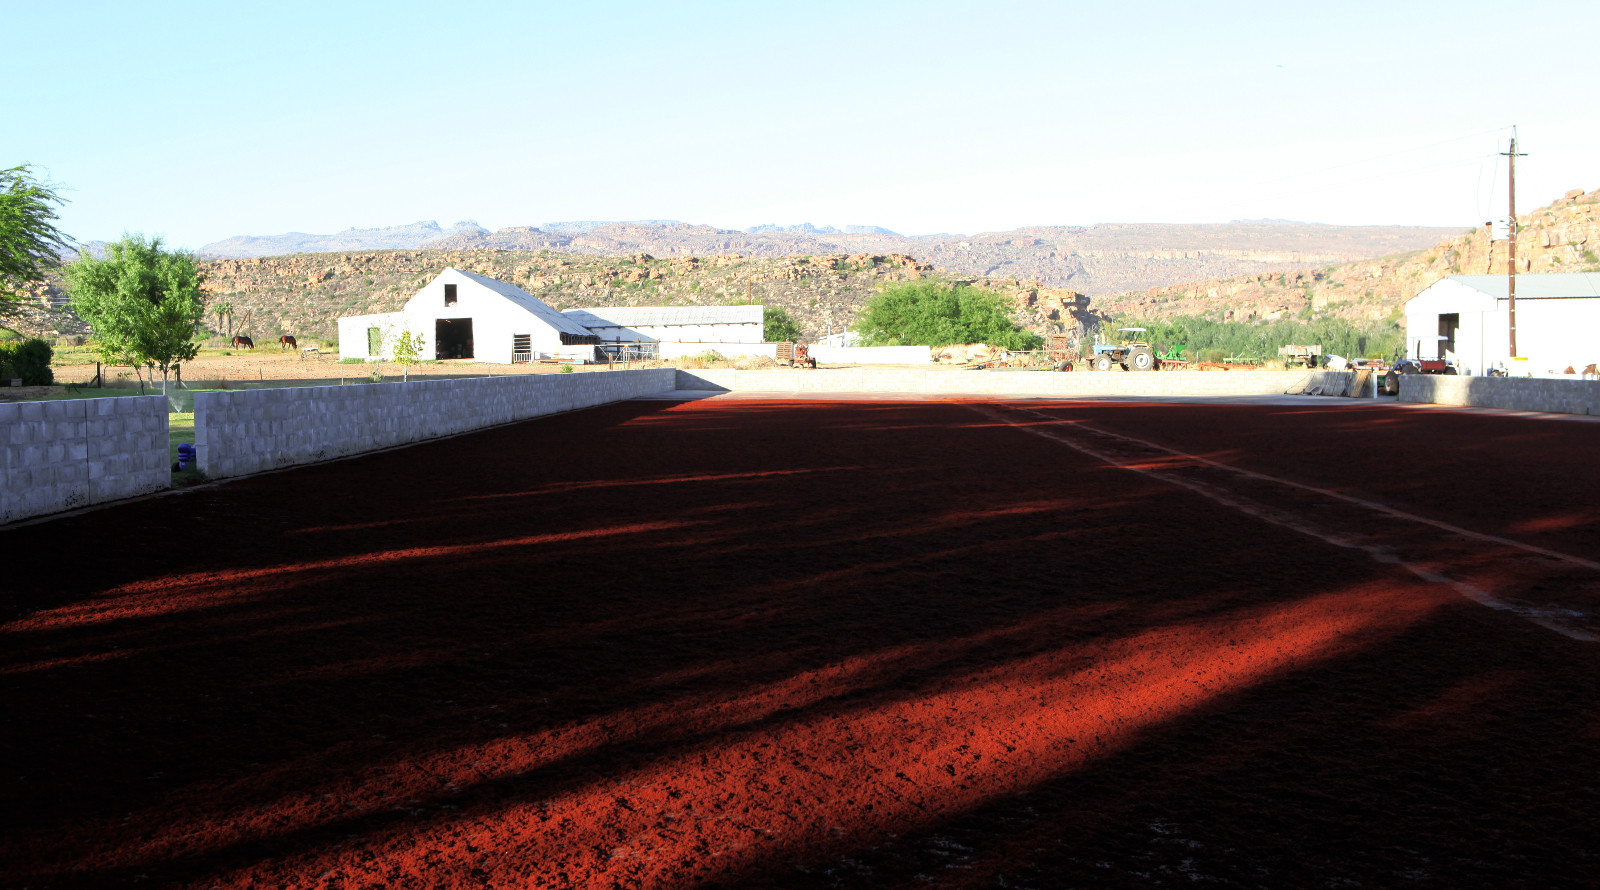 How Rooibos is processed